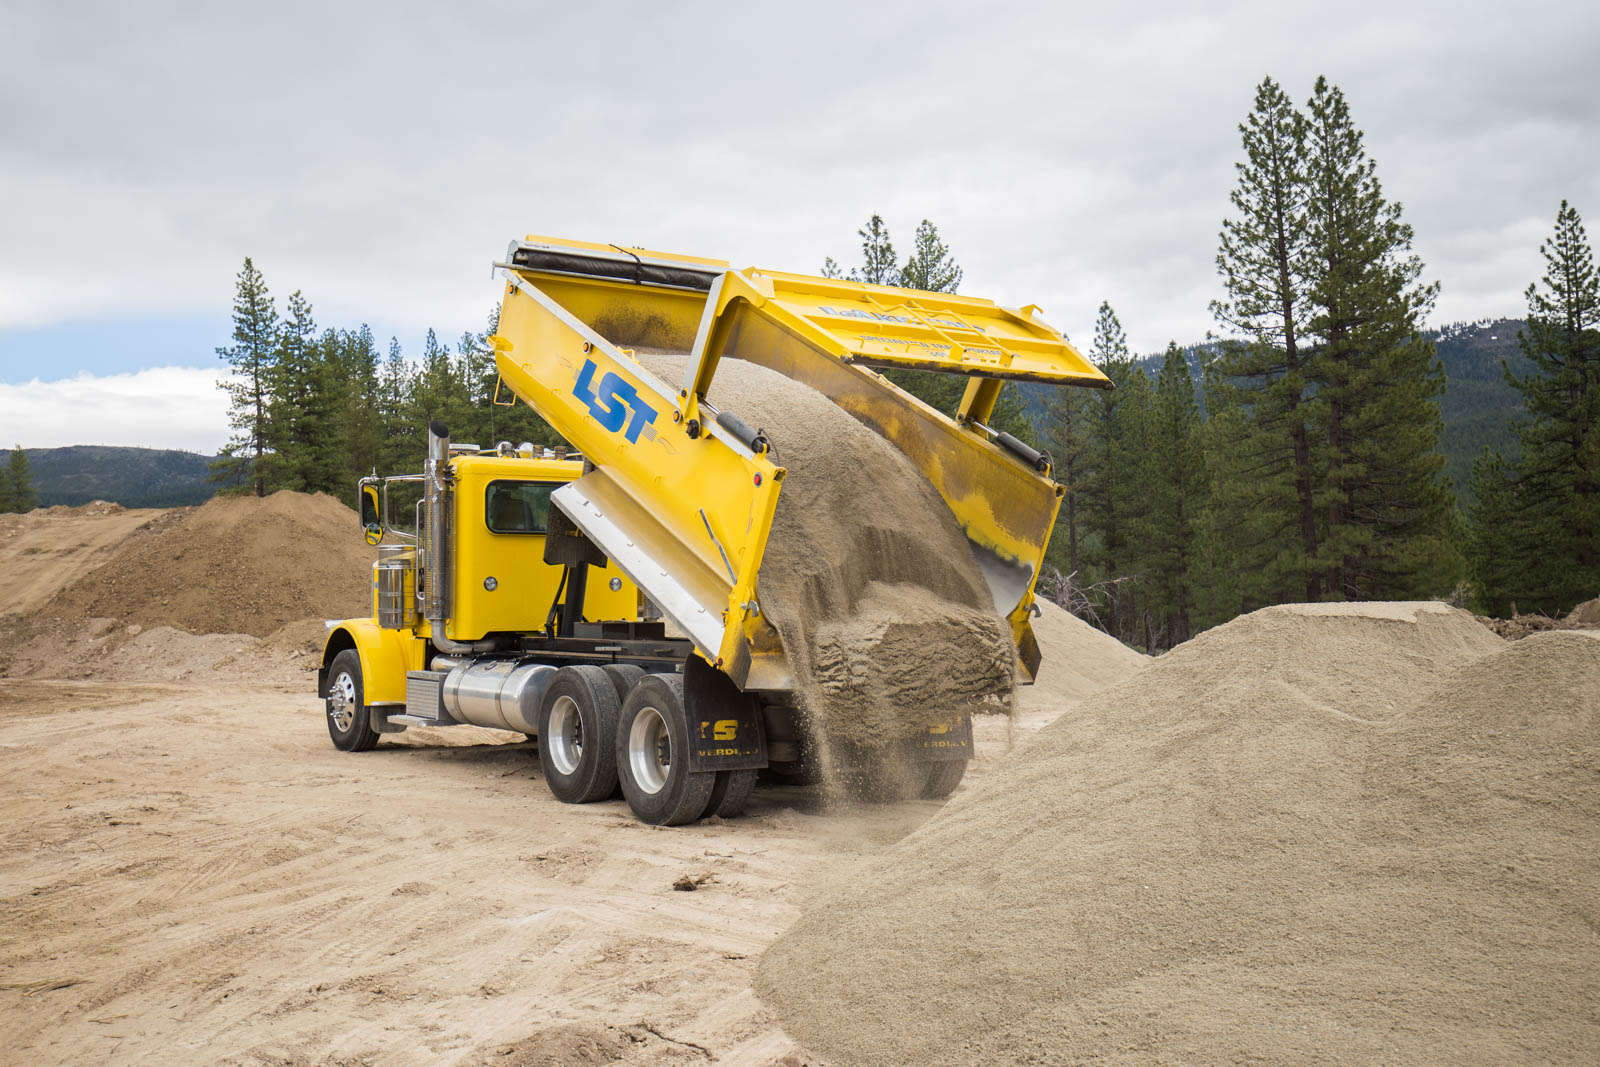 wesco transfer trailer dumping sand